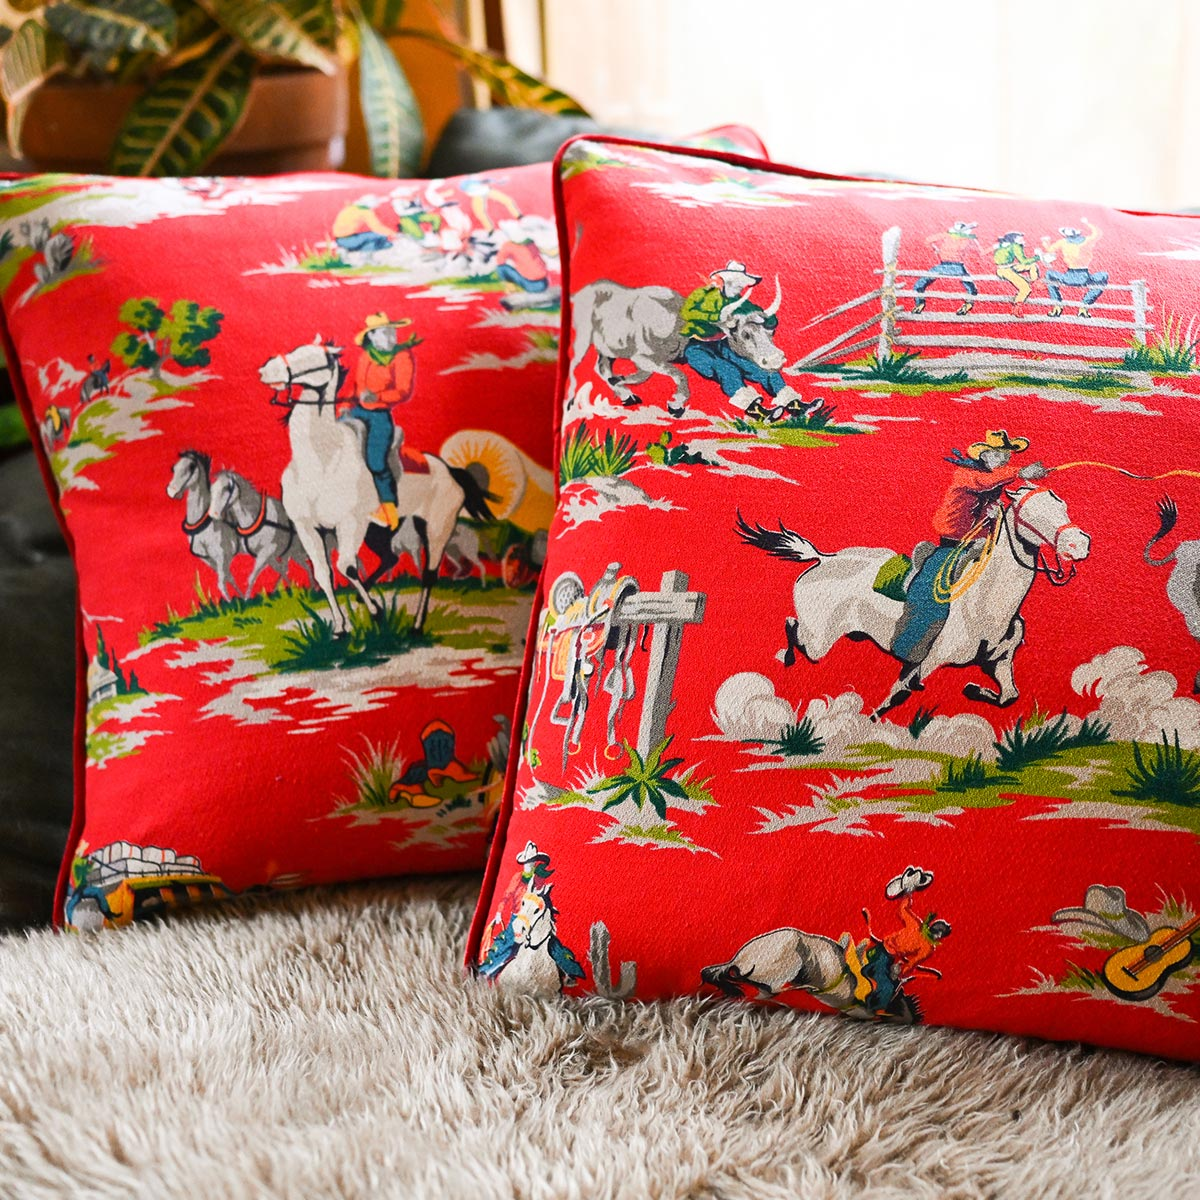 Barkcloth Pillows Pair – Extremely Rare Cowboy Motif on Cherry Red